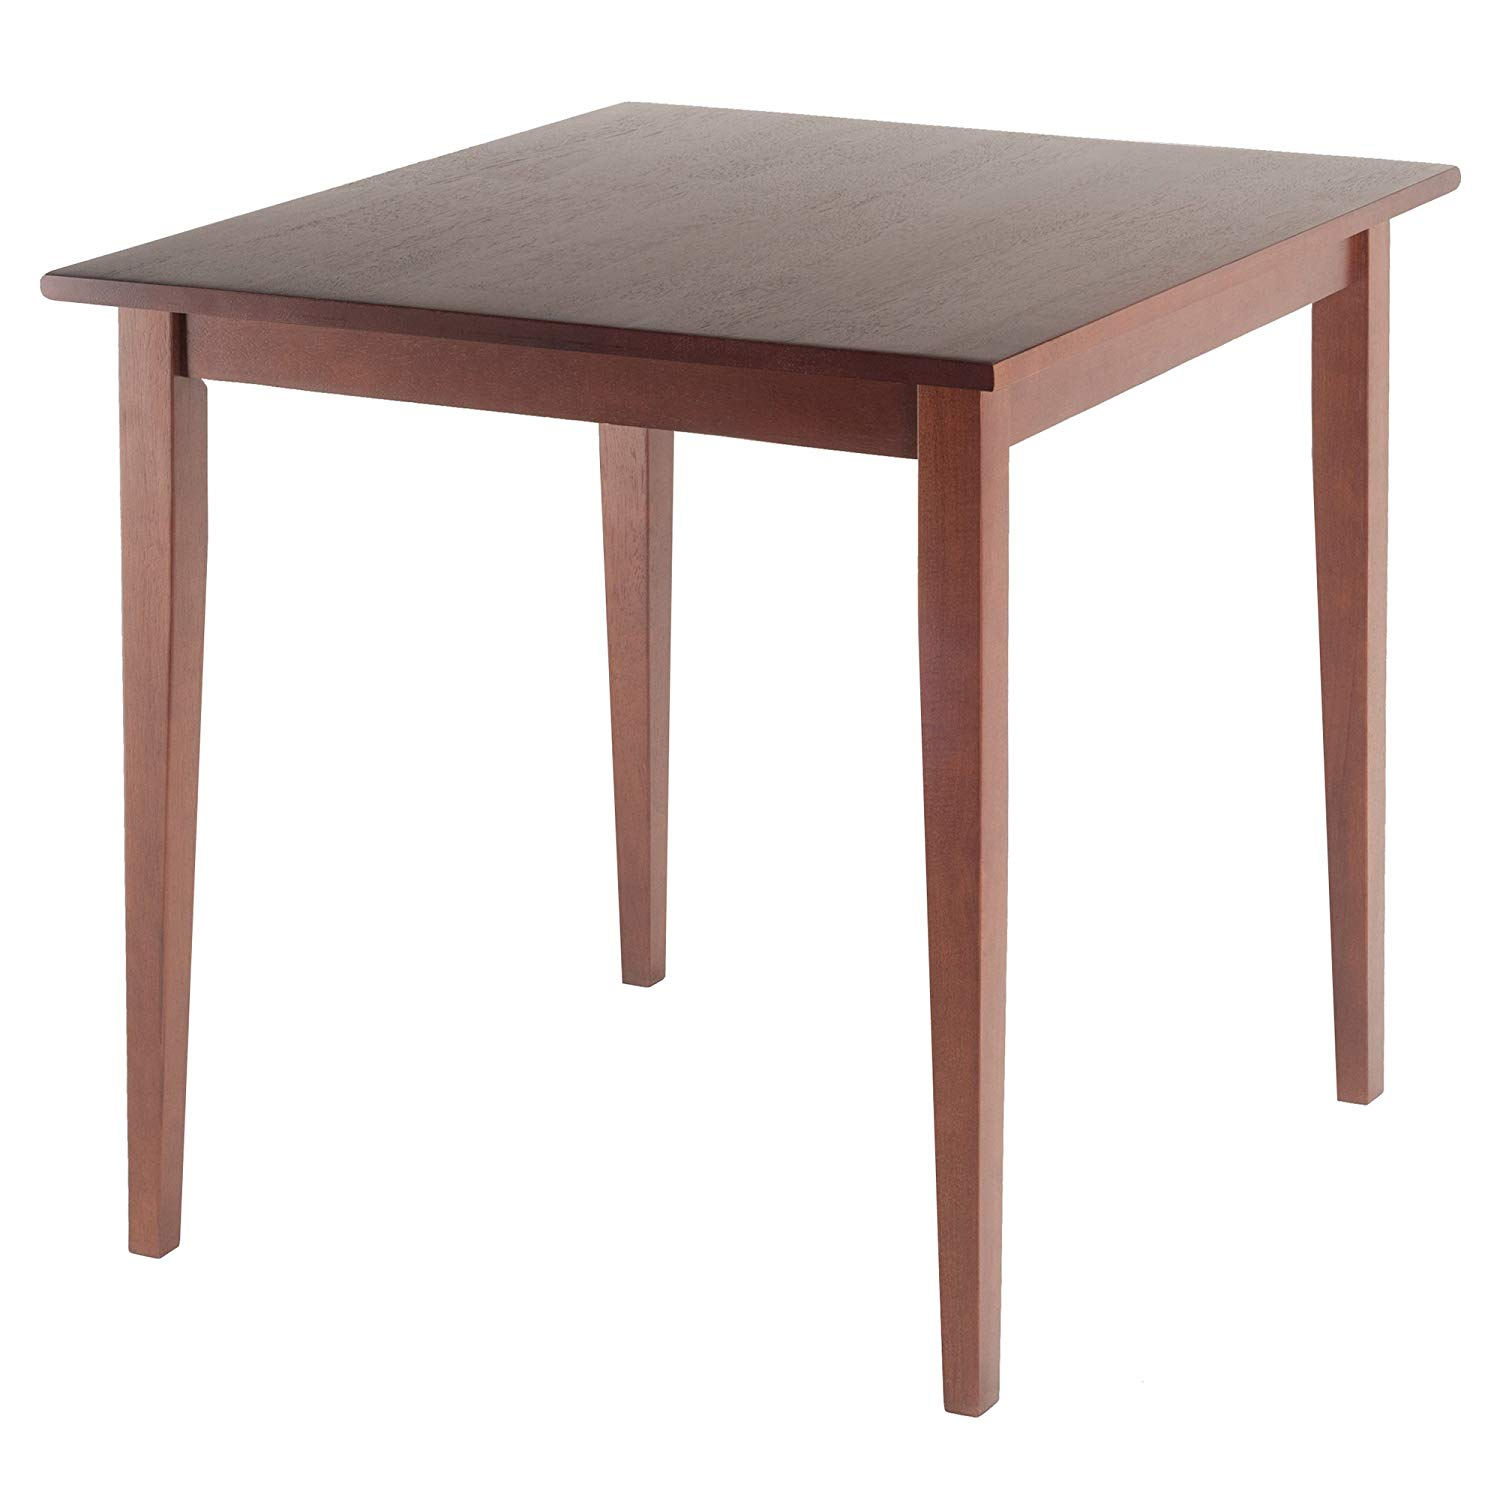 winsome wood groveland dining walnut tables accent table instructions what color sage outdoor furniture coffee wine racks for home fine linens storage cabinets with doors and